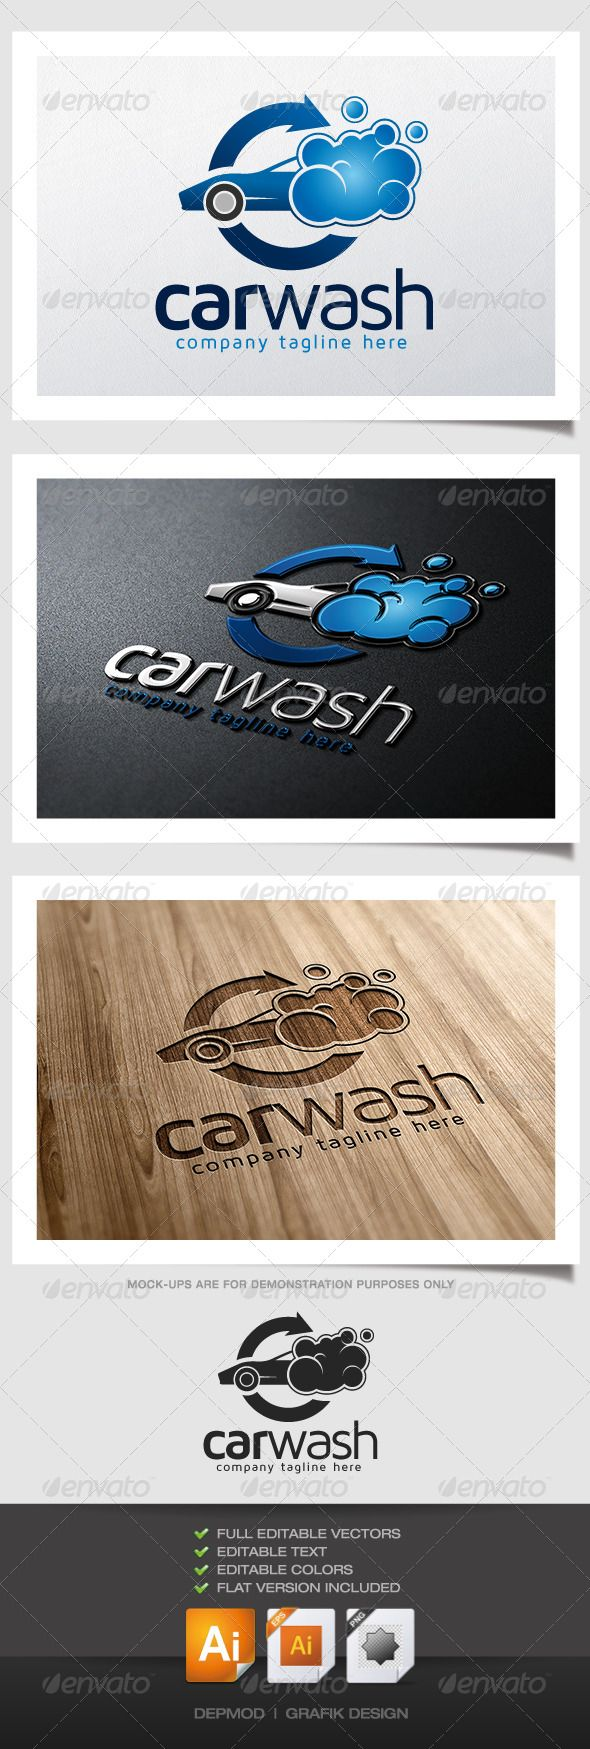 Car Wash - Logo Design Template Vector #logotype Download it here: http://graphicriver.net/item/car-wash-logo/5073159?s_rank=997?ref=nexion